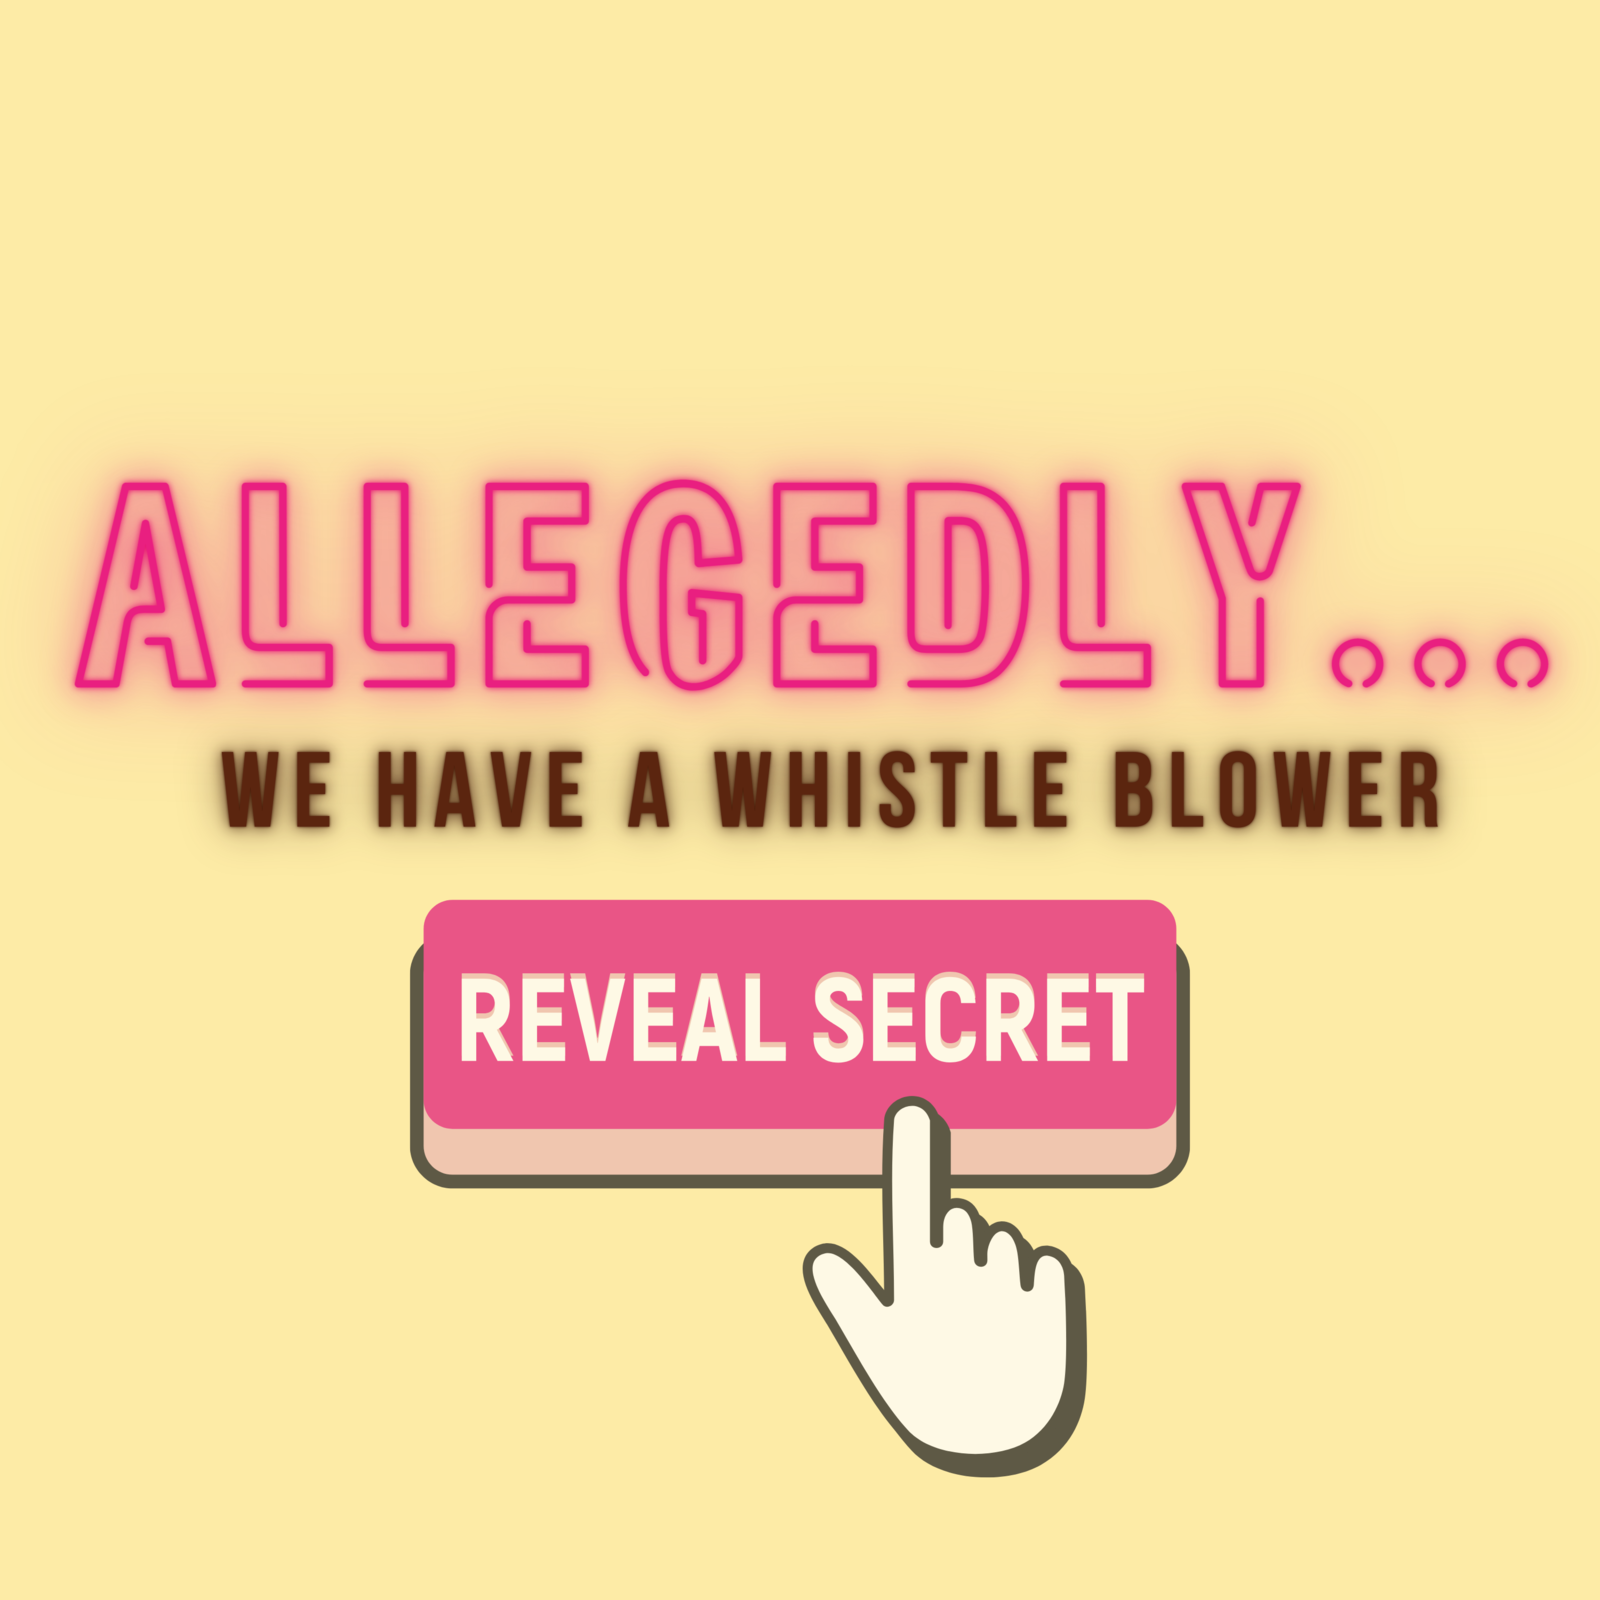 10: Allegedly... we have a whistle blower